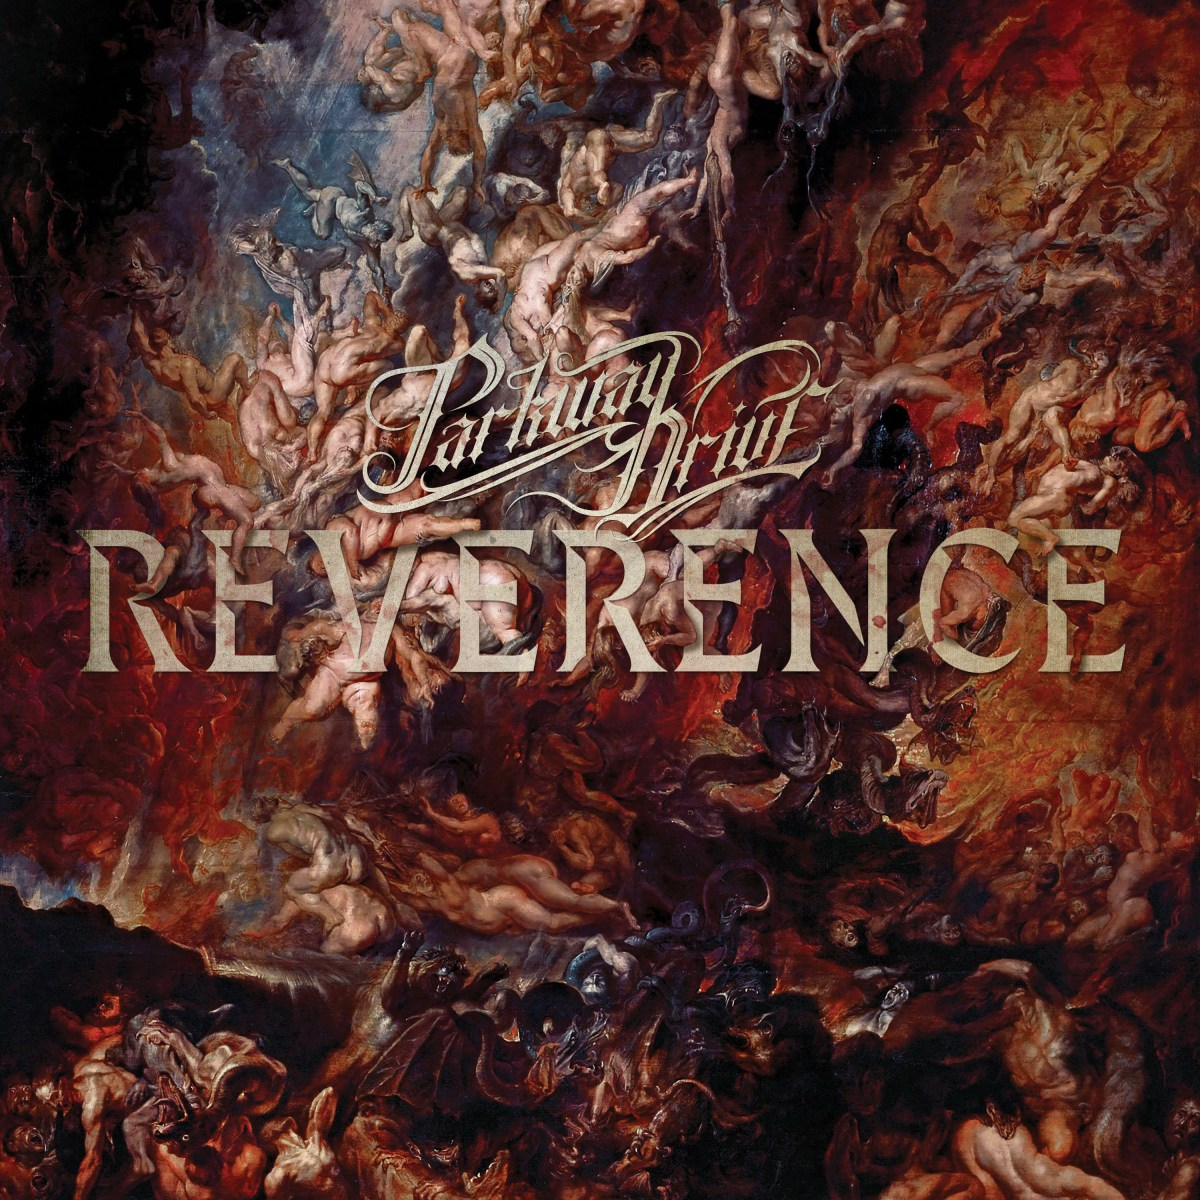 Parkway Drive - Reverence (Album Review)